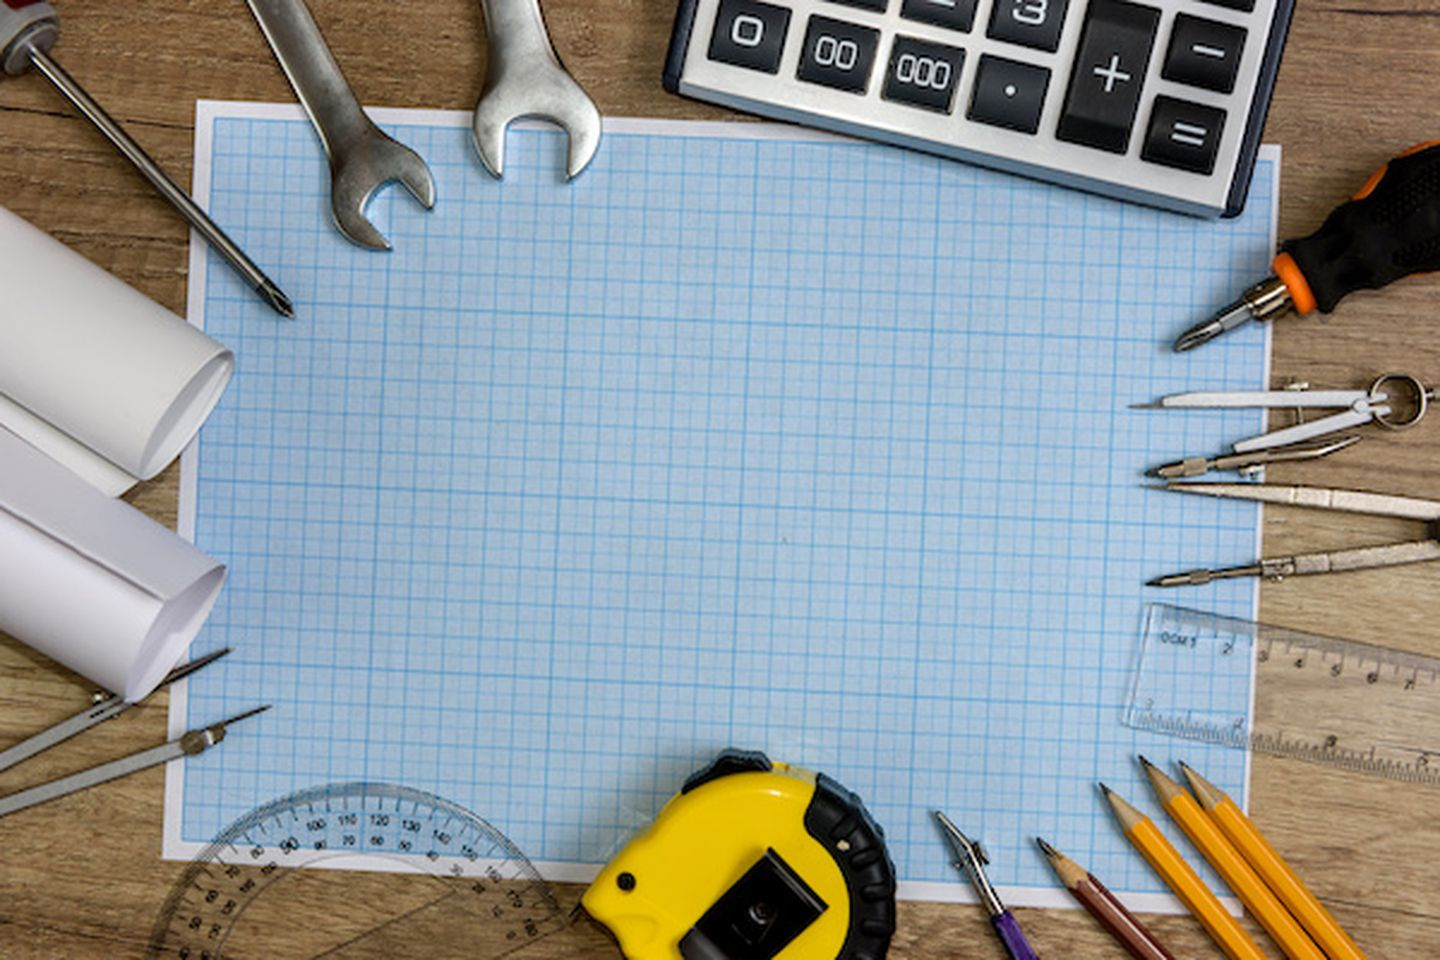 Drawing tools with millimeter paper on wooden table